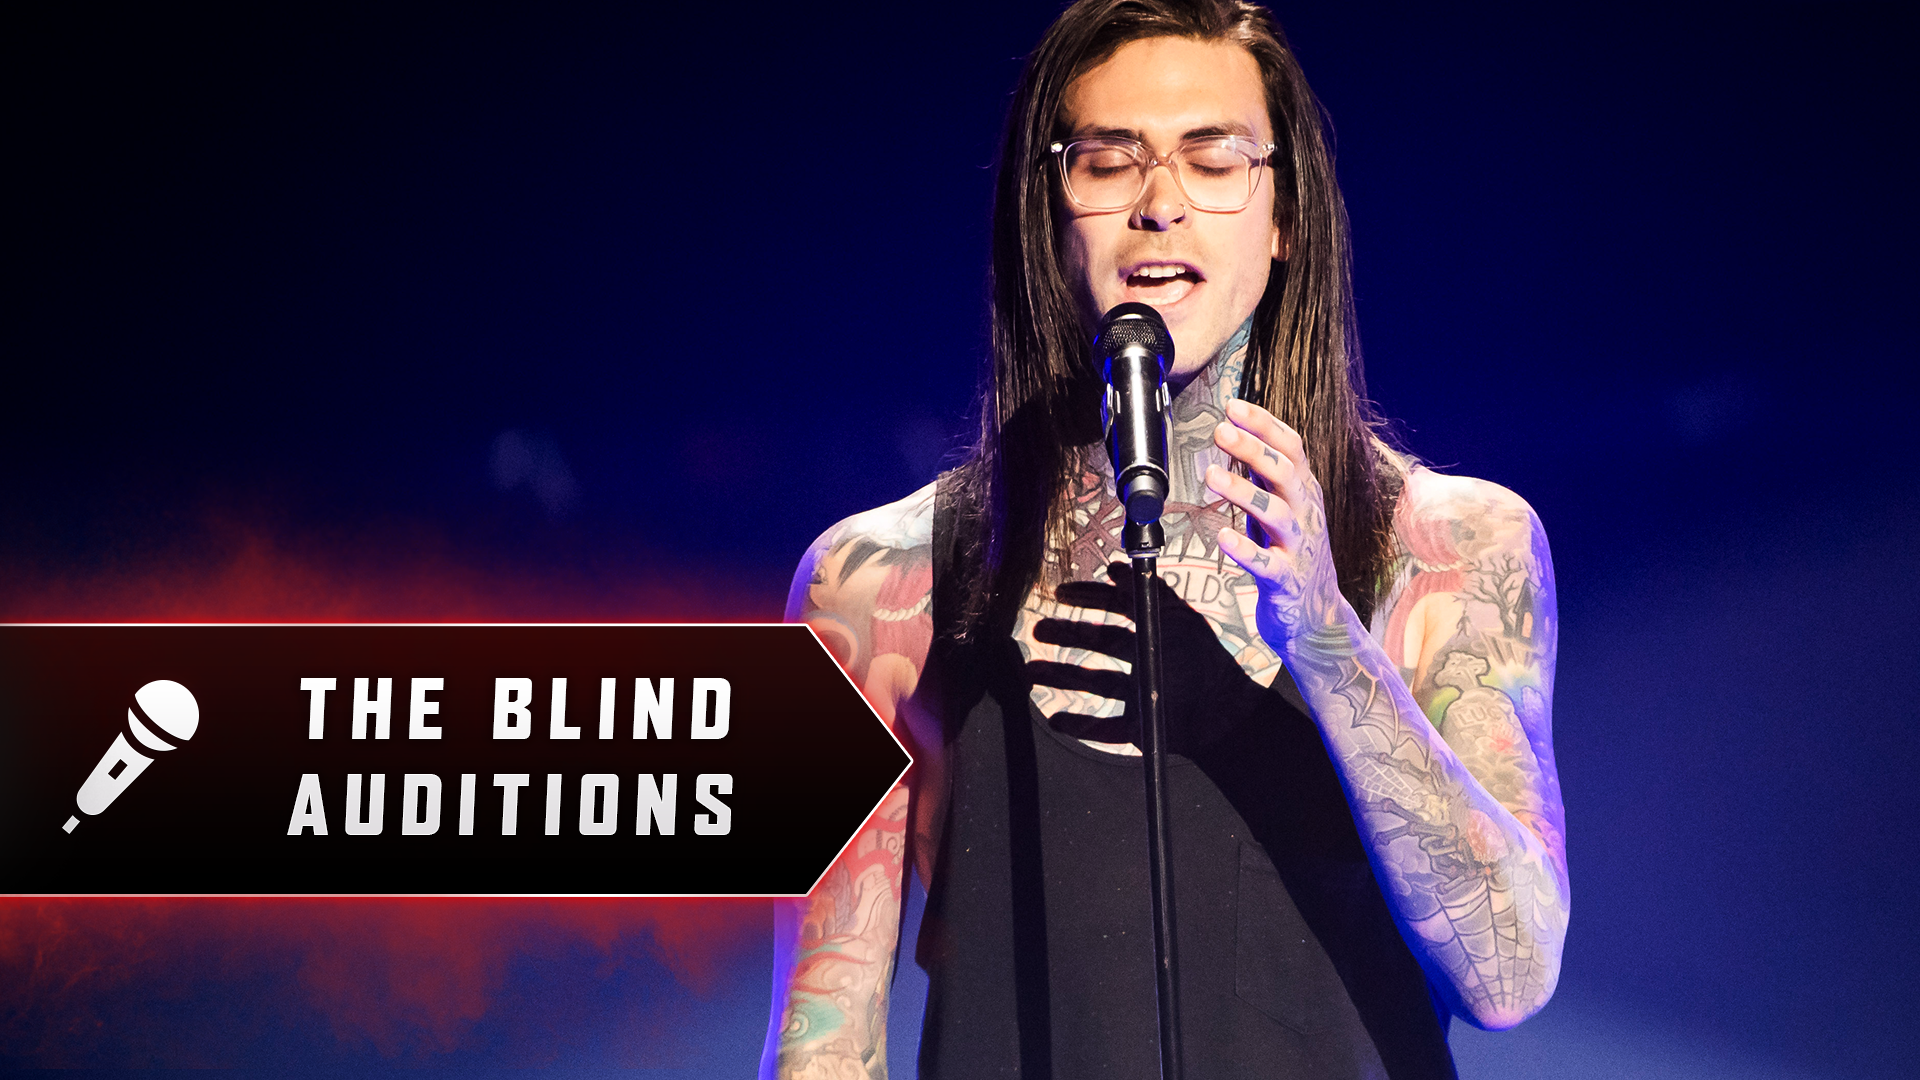 Blind Audition: Matt Garwood 'You Raise Me Up'